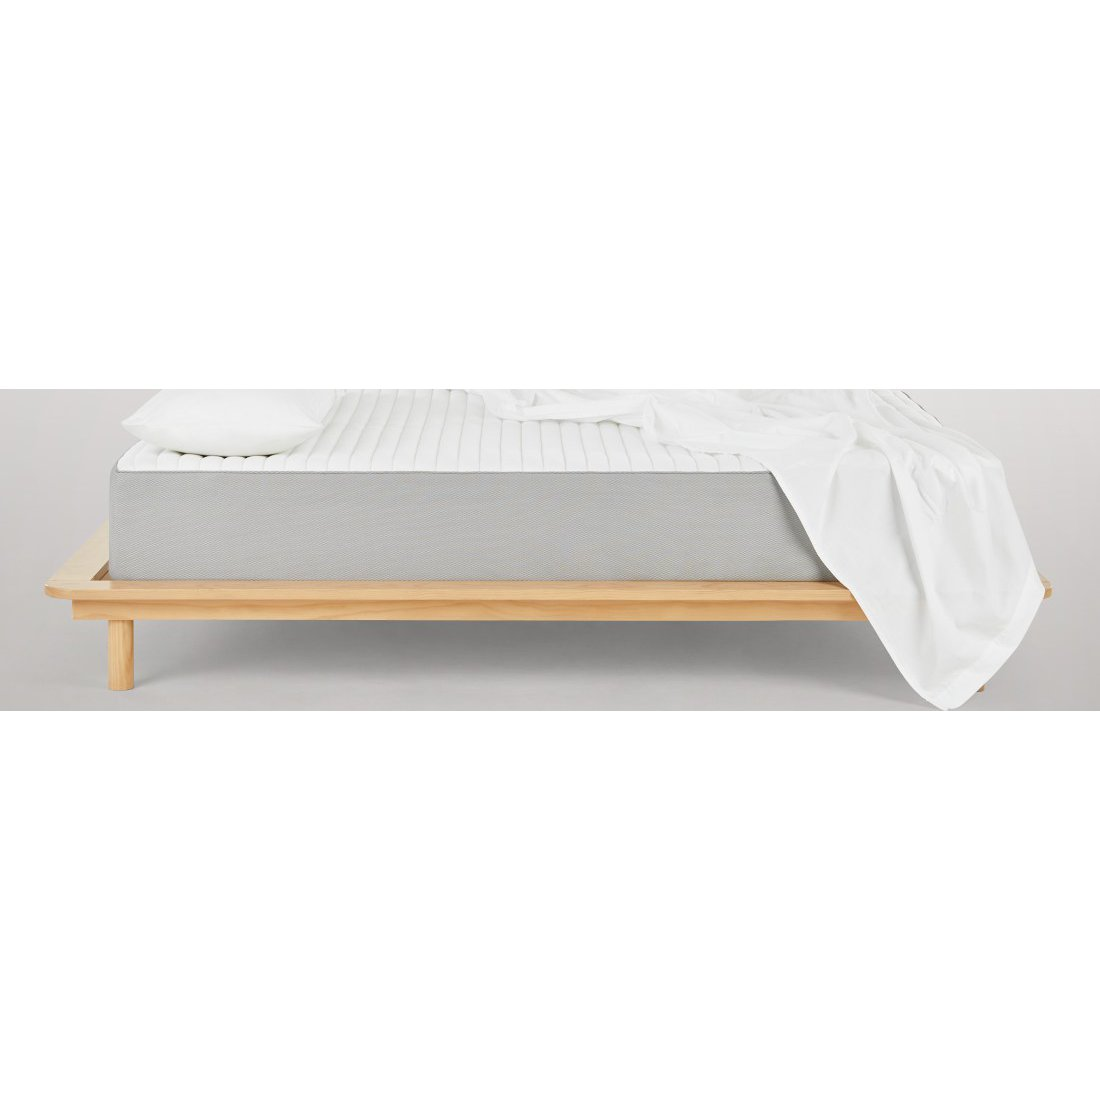 image-The Memory One Mattress, Double